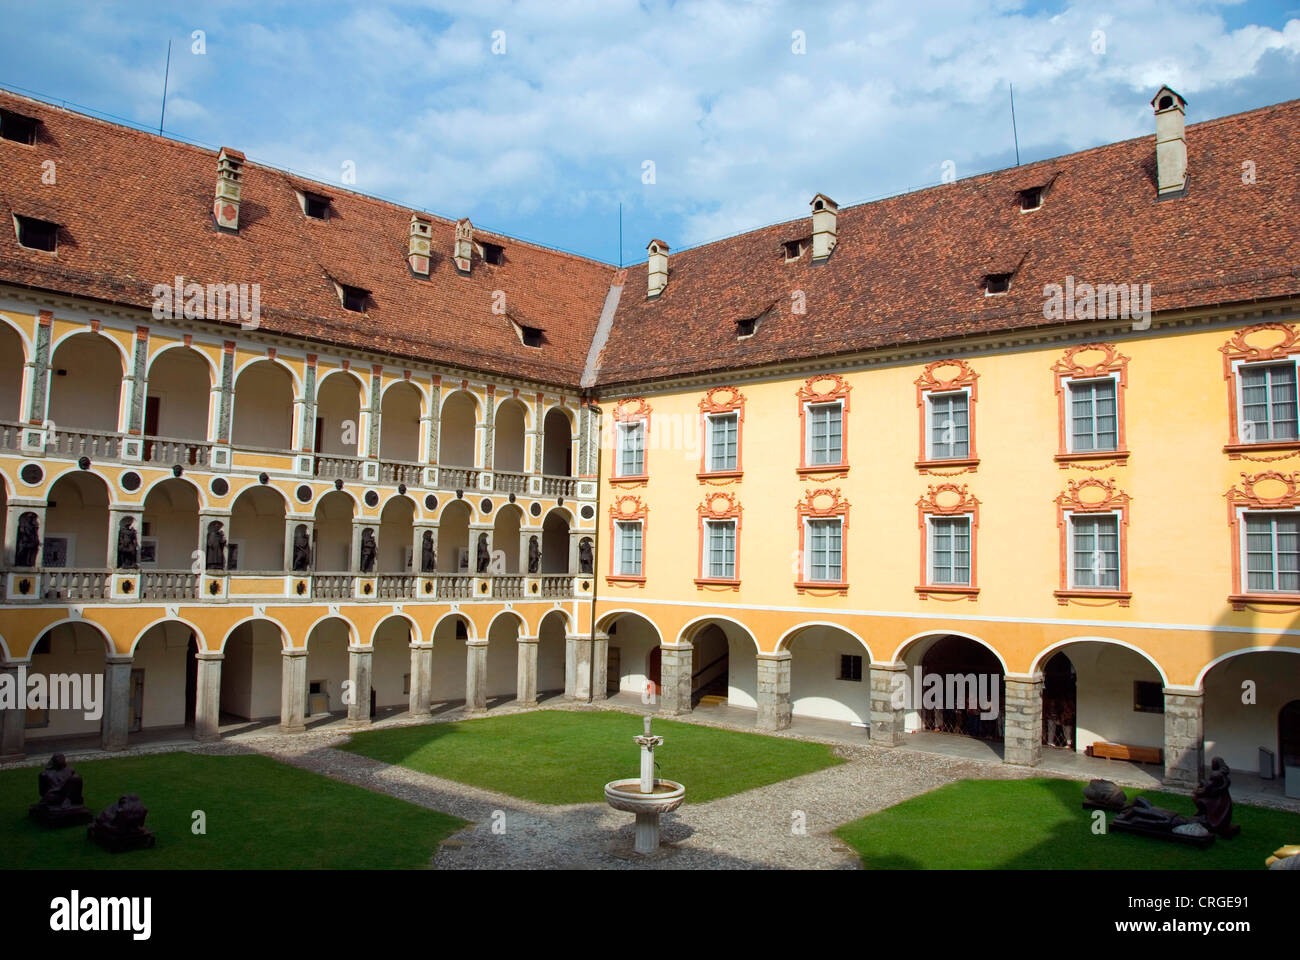 burg italien trentino suedtirol brixen stockfoto bild 48920285 alamy. Black Bedroom Furniture Sets. Home Design Ideas